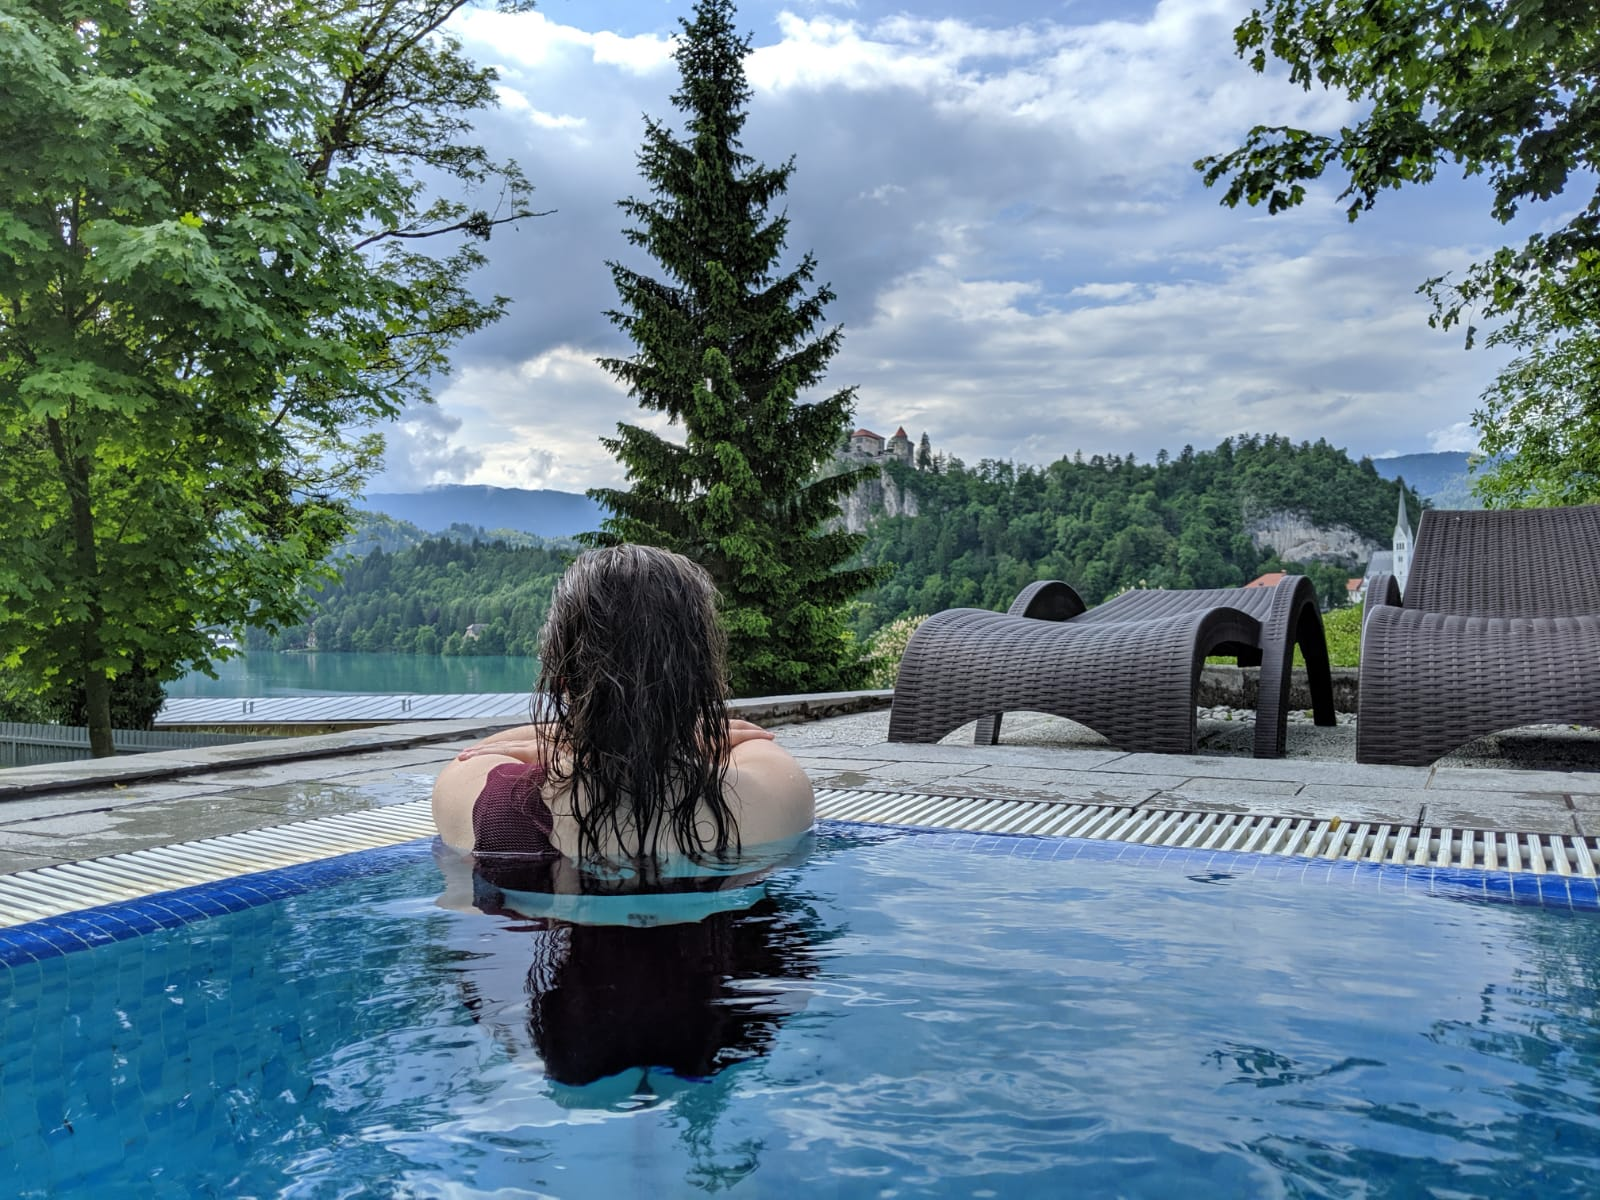 Outdoor Thermal Pool at Živa Wellness Spa in Lake Bled, Slovenia